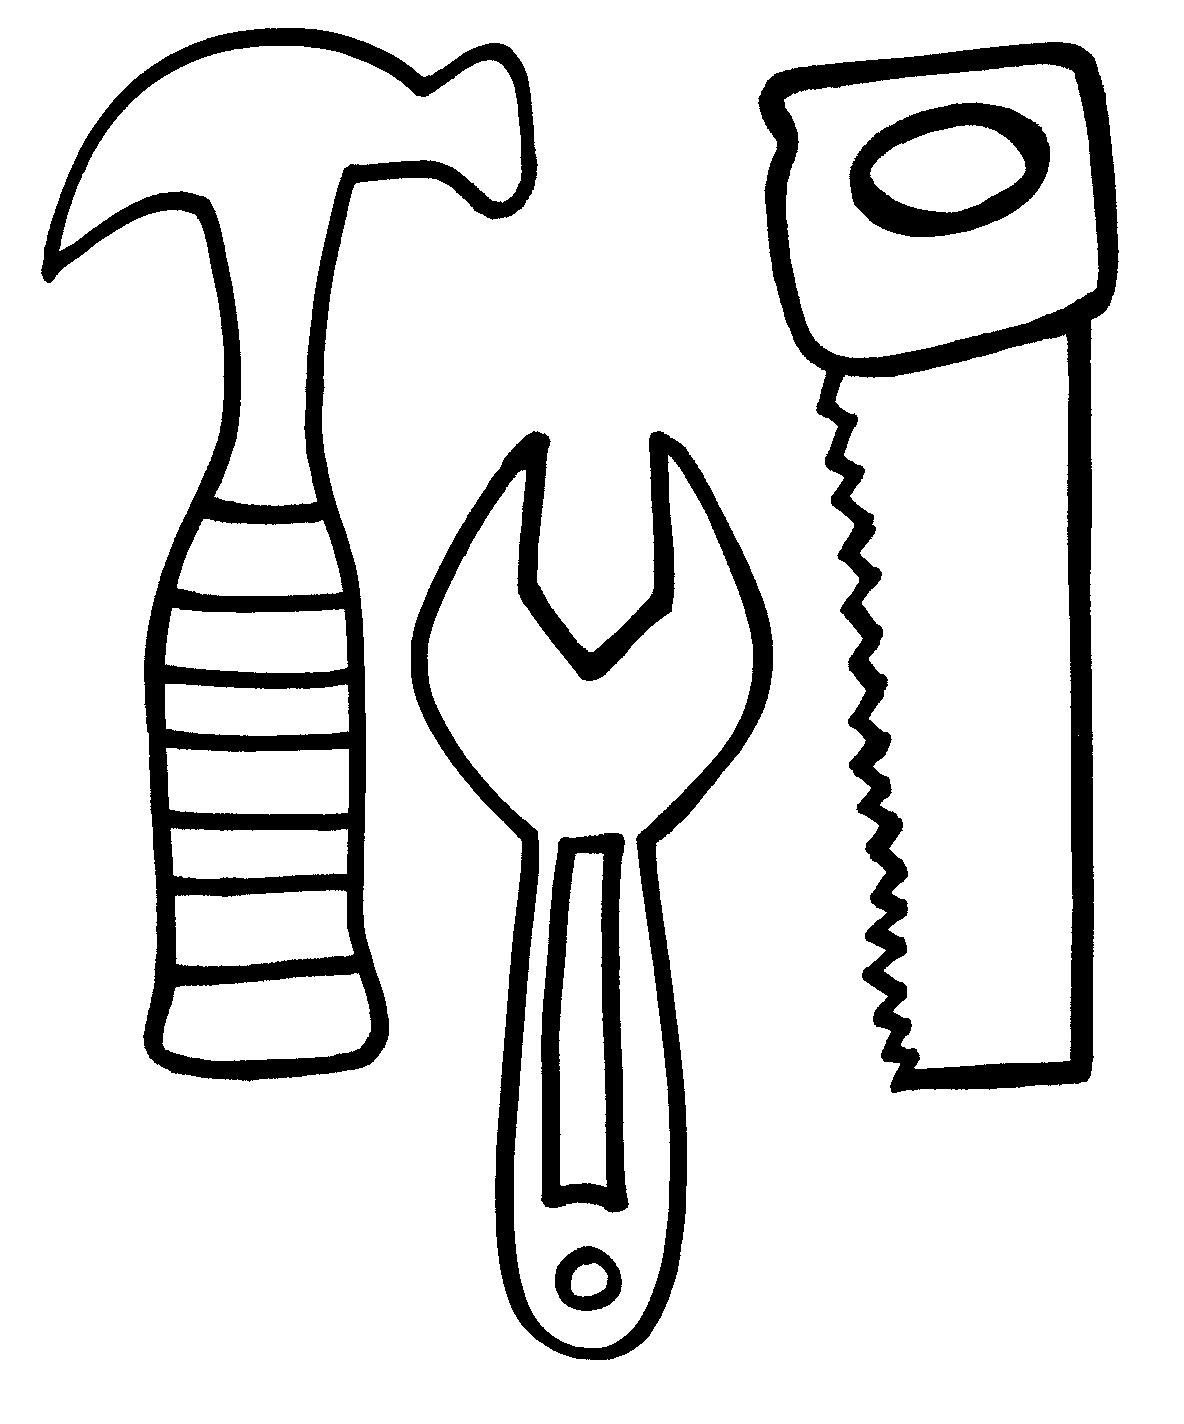 1184x1424 Doctor Tools Coloring Pages